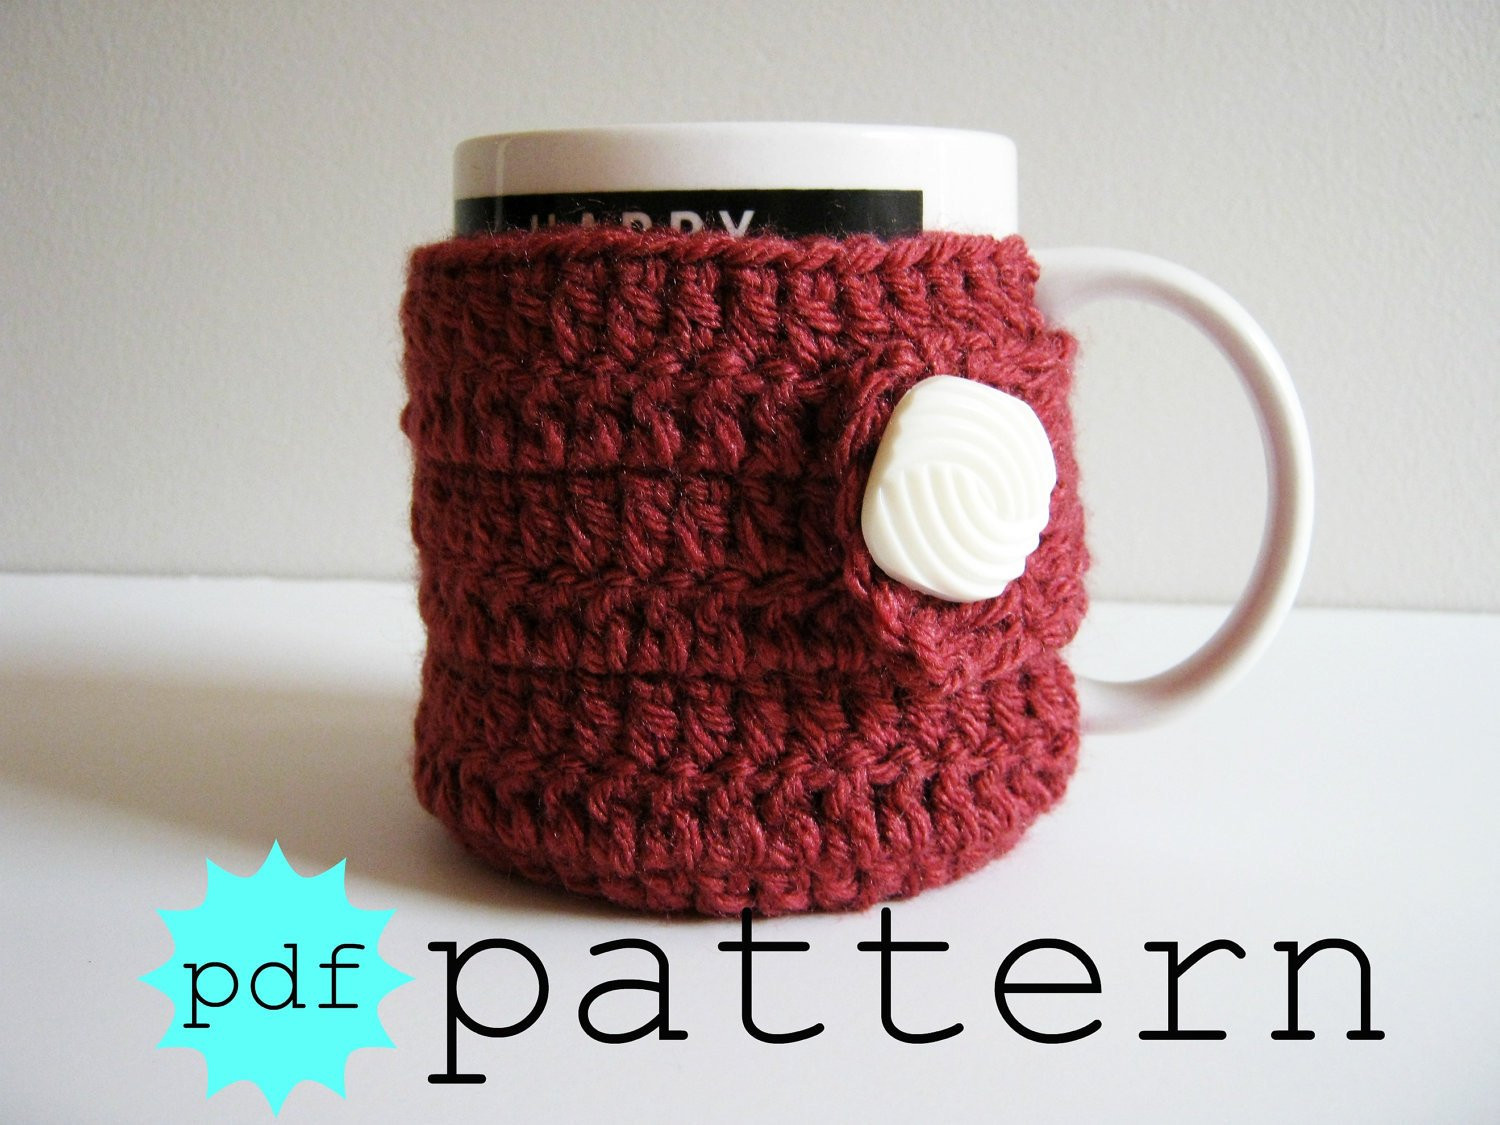 Crochet Coffee Cup Cozy Luxury Pdf Crochet Pattern Coffee Mug Cozy with button by Of Crochet Coffee Cup Cozy New Crochet Tea Cozy Coffee Cup Sleeve Coffee Sleeve Mug Cozy